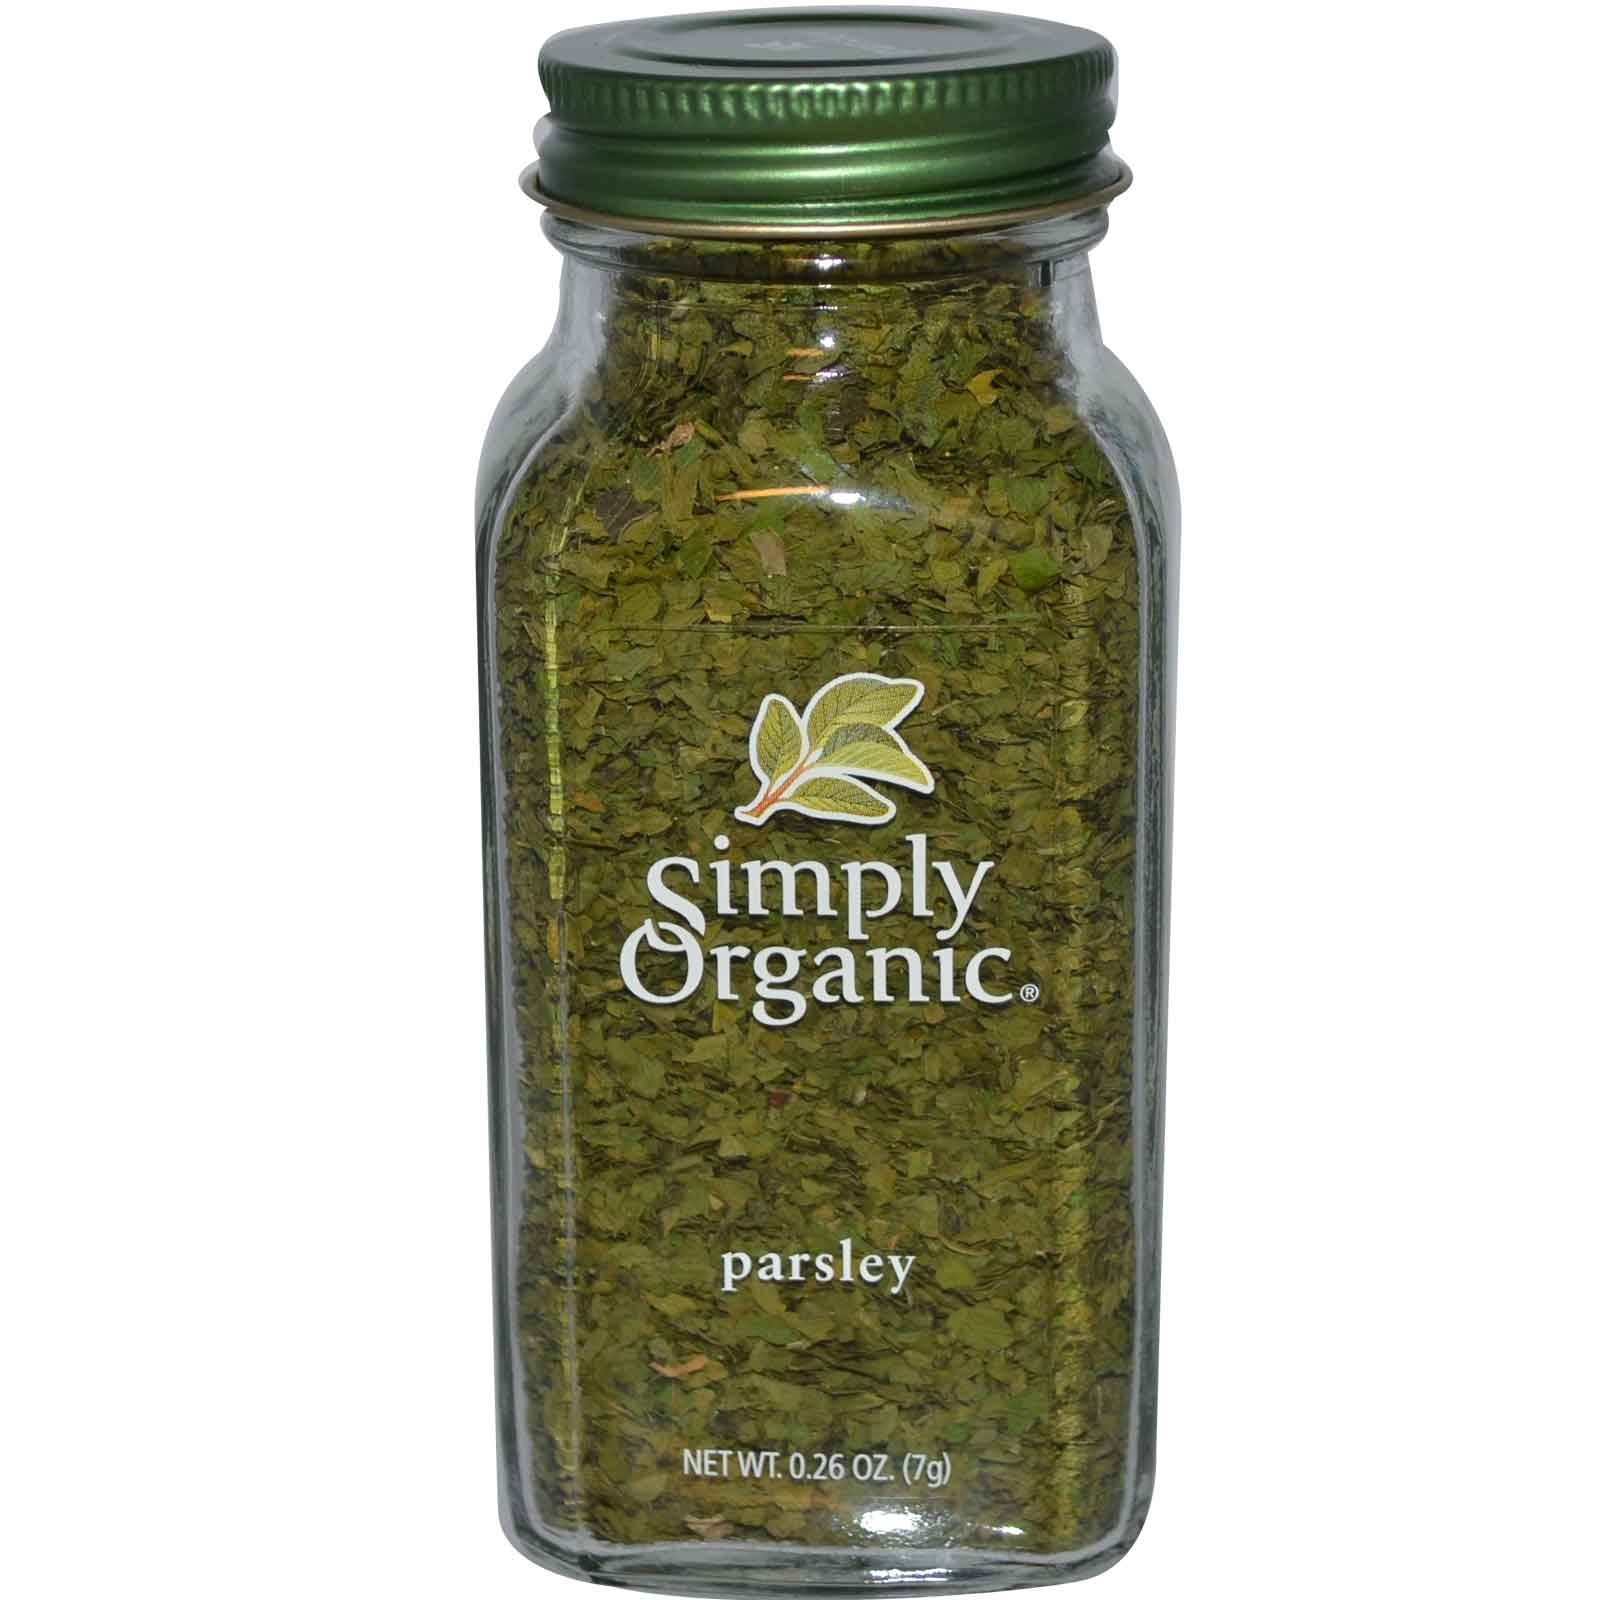 Simply Organic, Parsley, 0.26 oz(Pack of 3) by Simply Organic (Image #1)